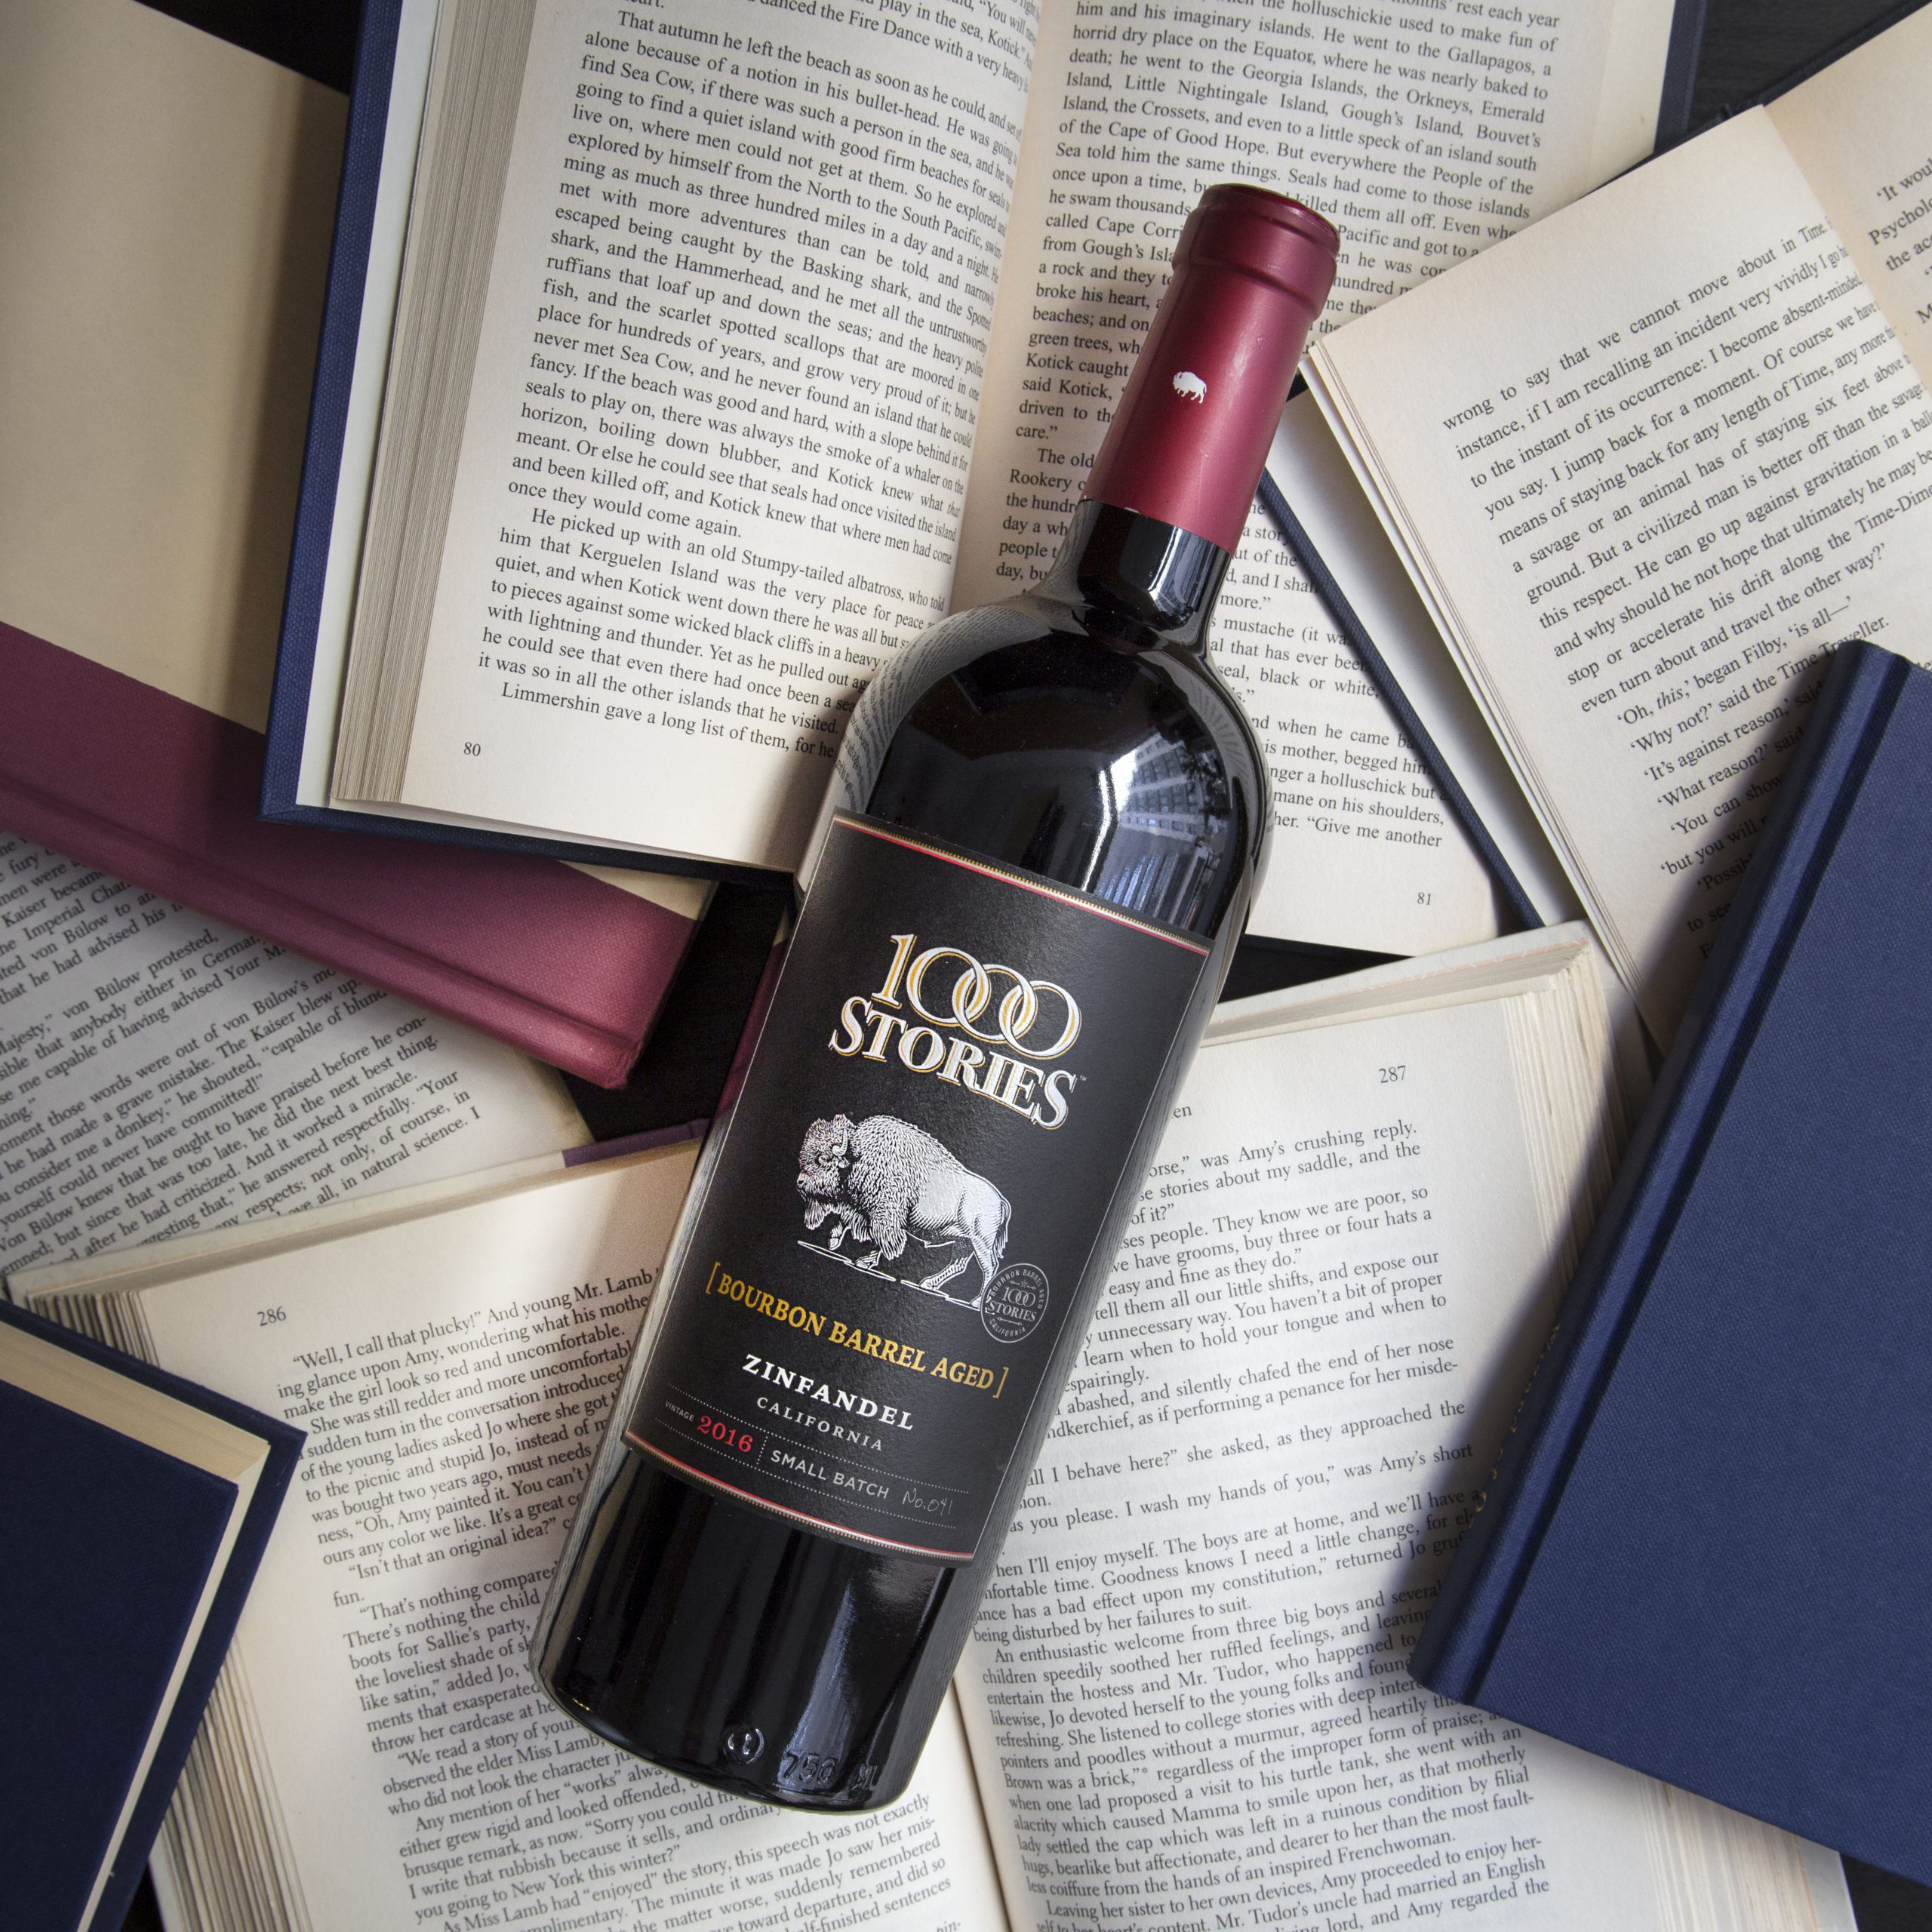 1000 Stories – Vino tinto Zinfandel 750ml.